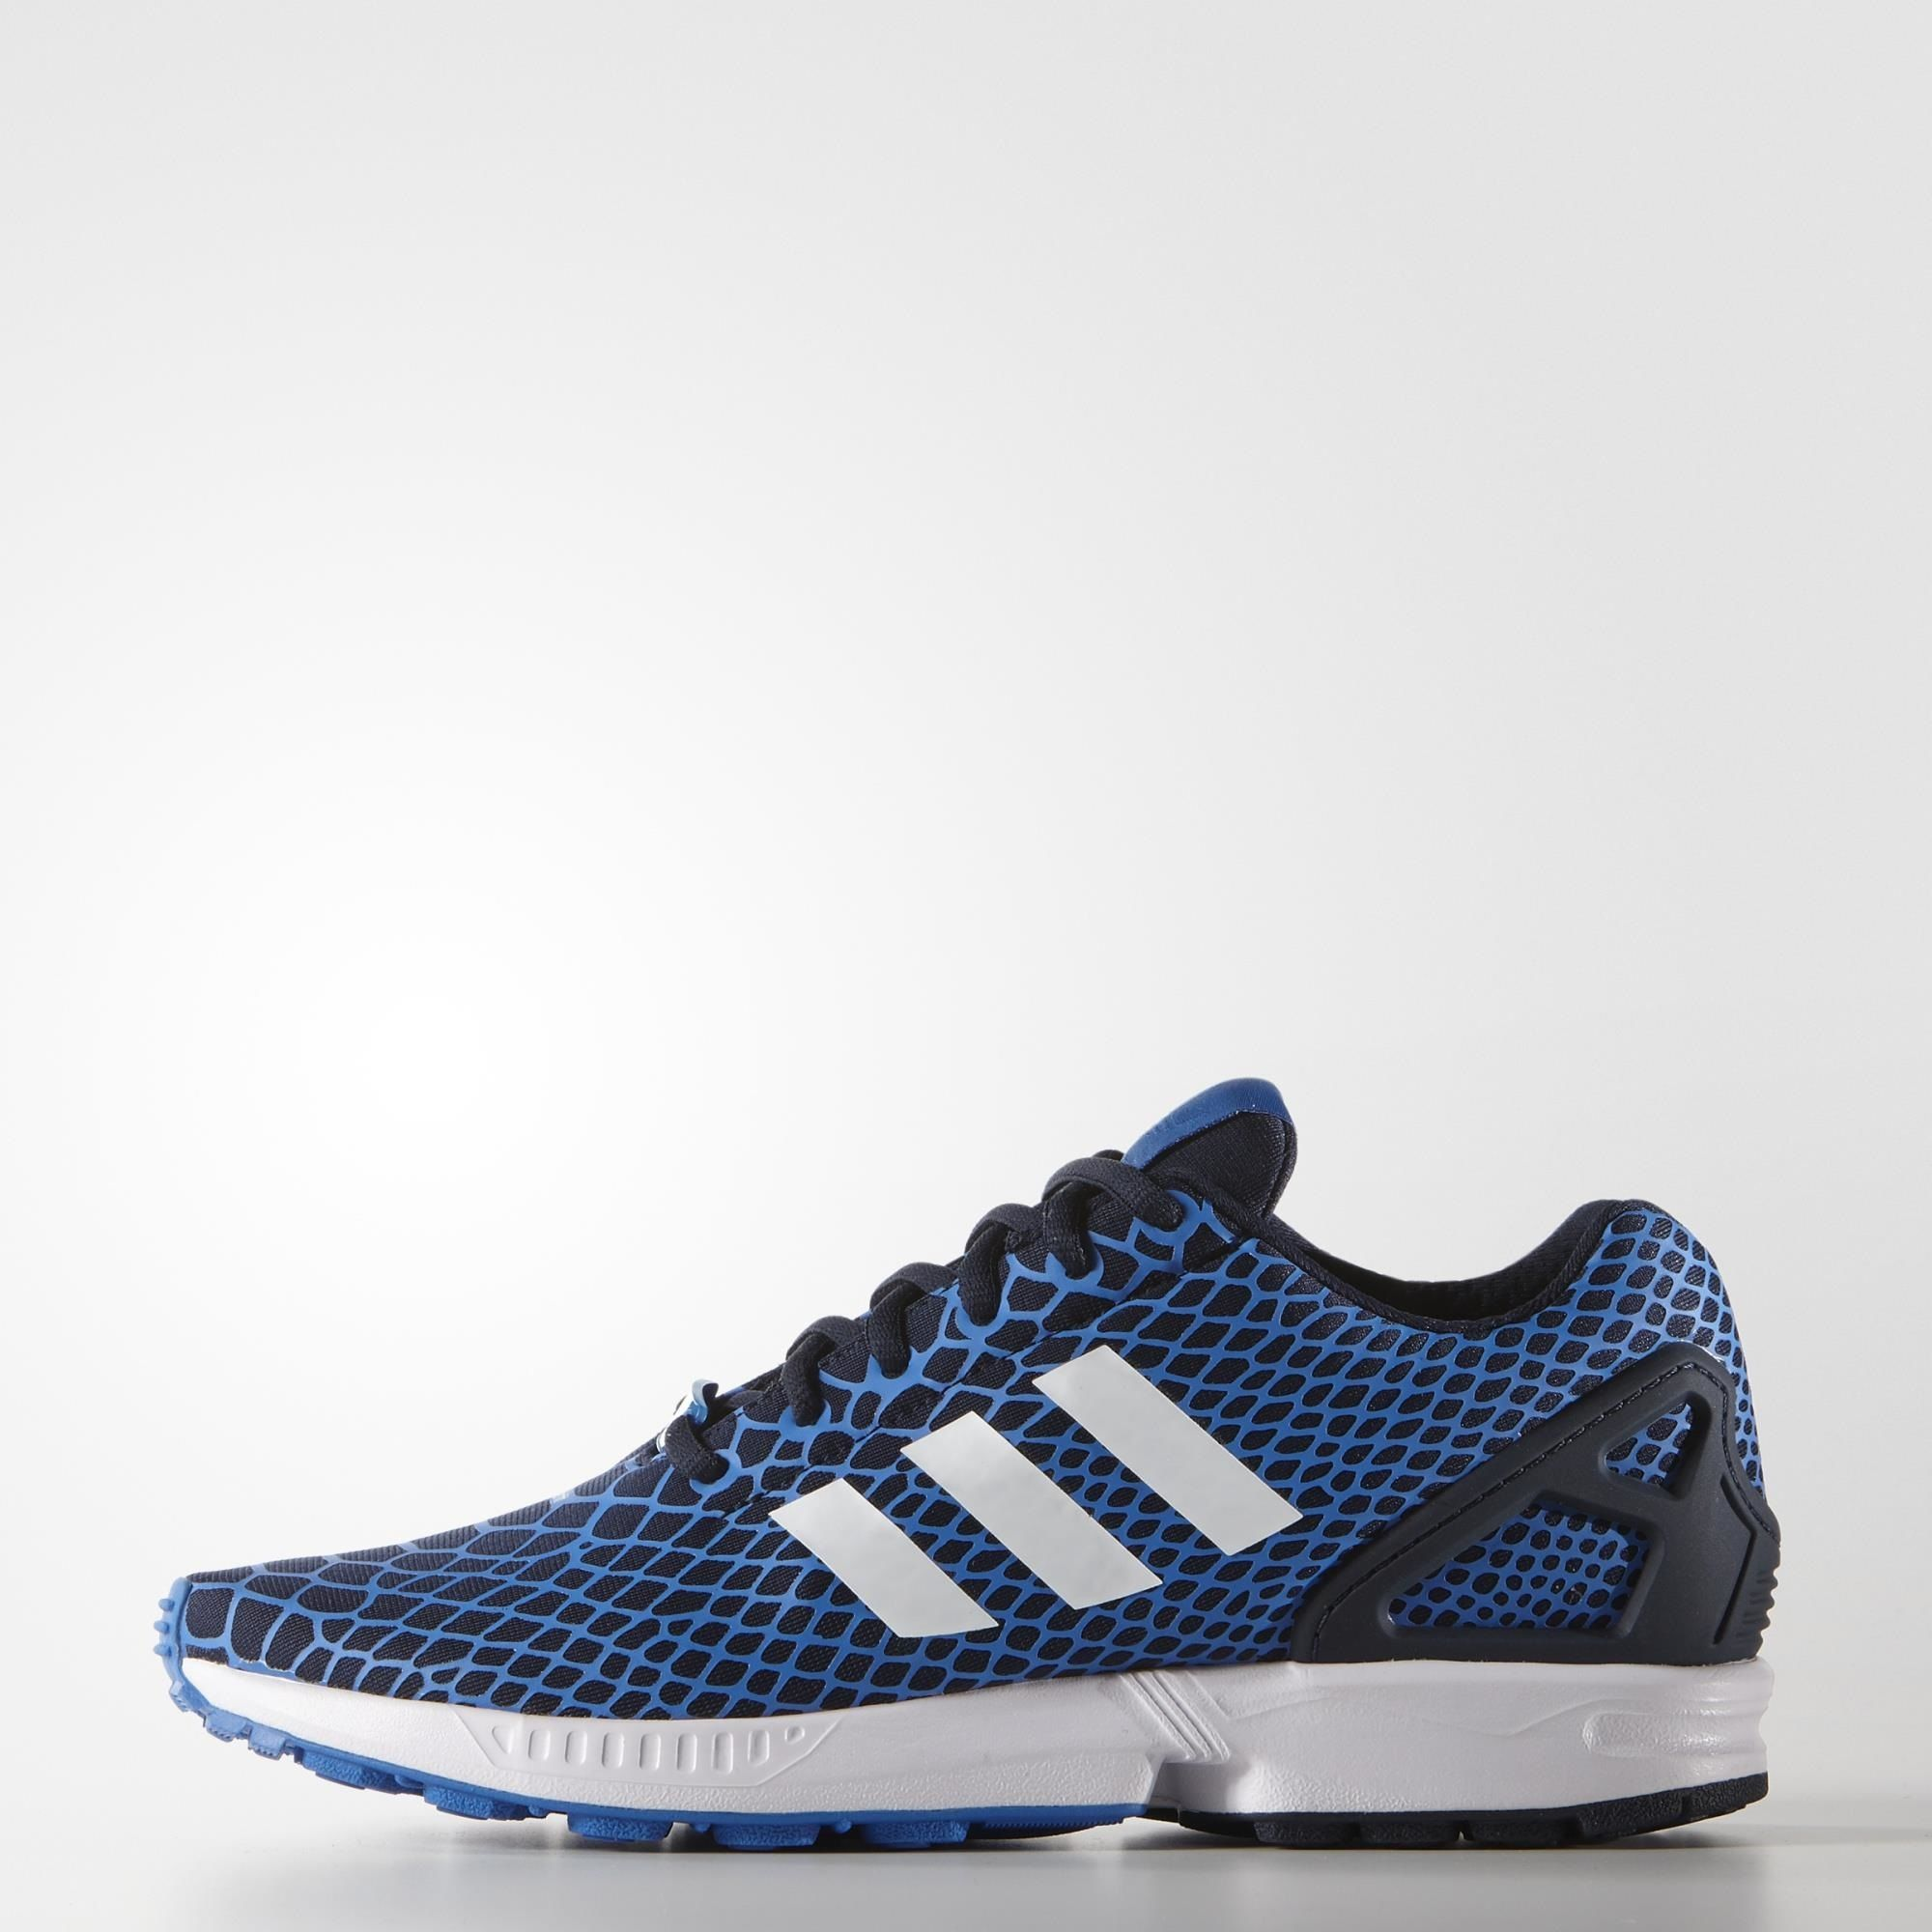 Techfit Shoes | adidas US